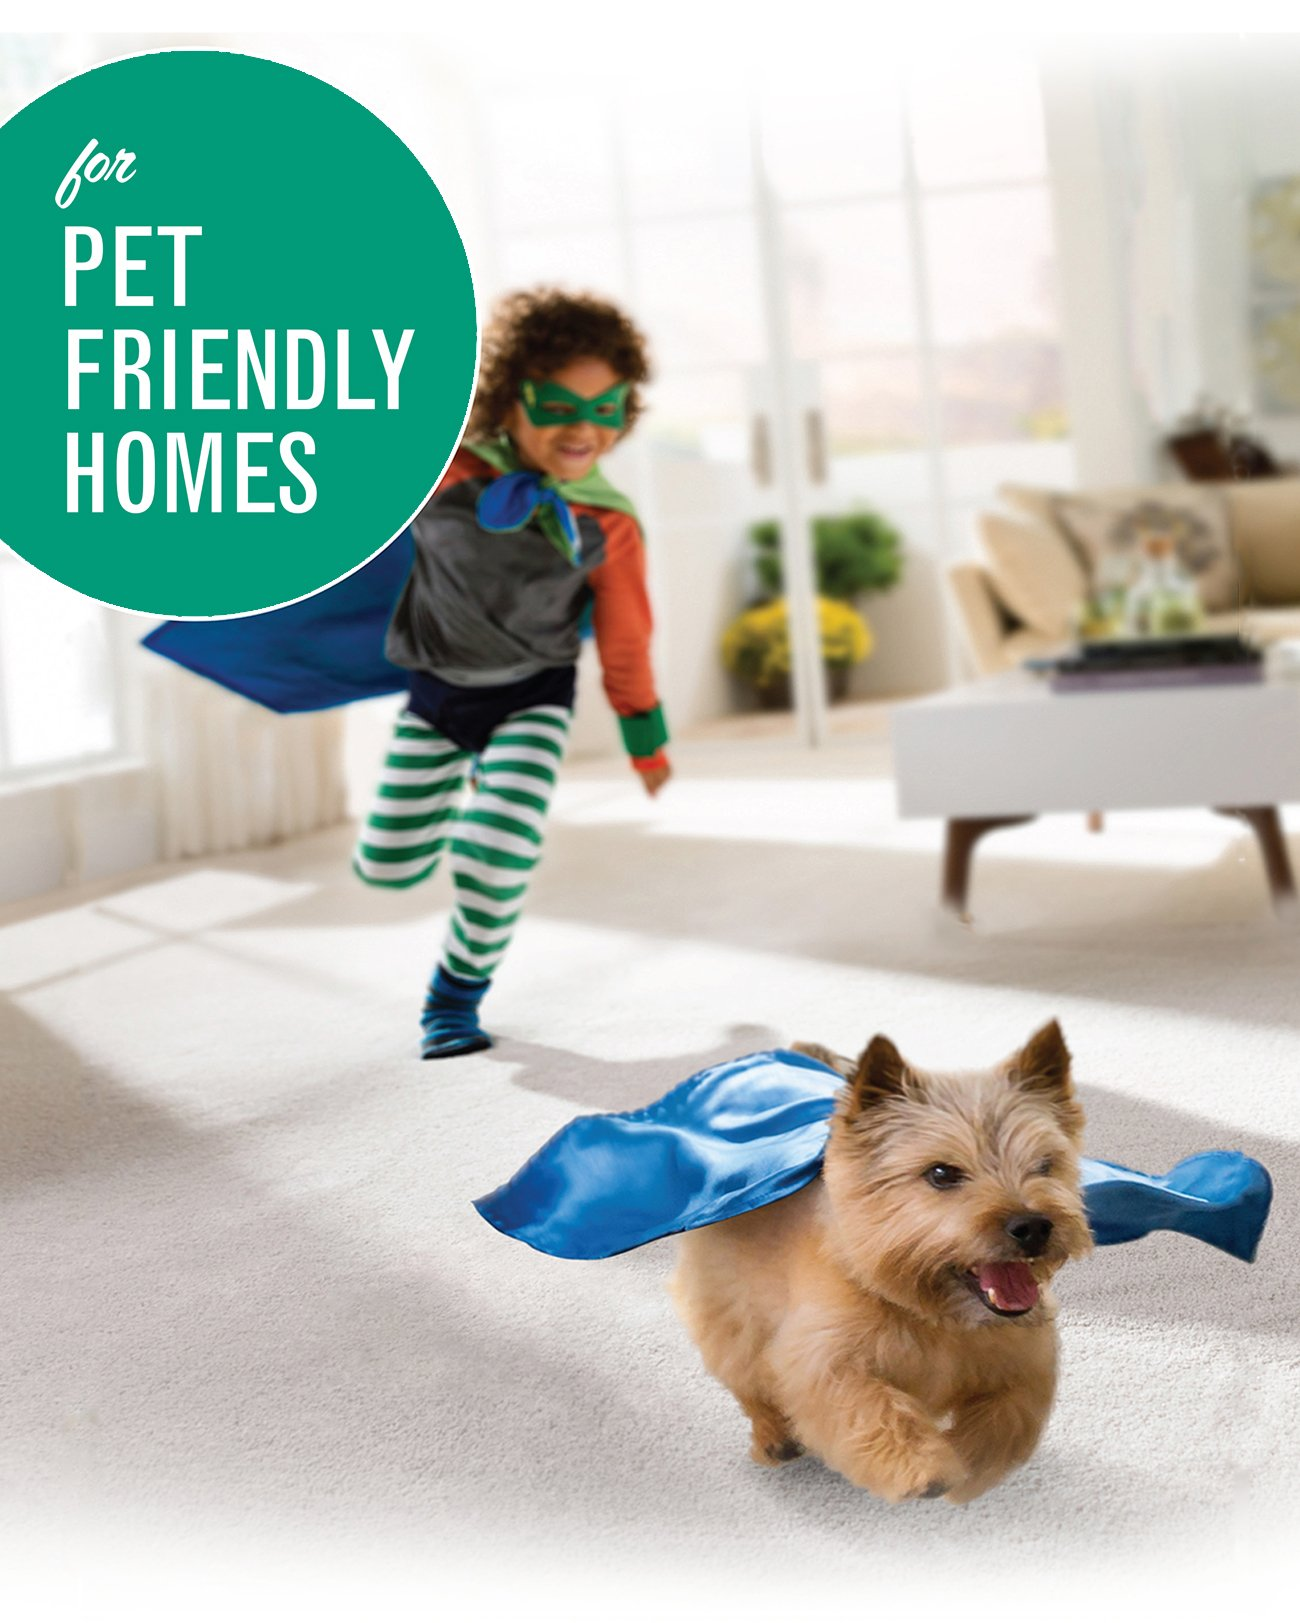 for Pet Friendly Homes